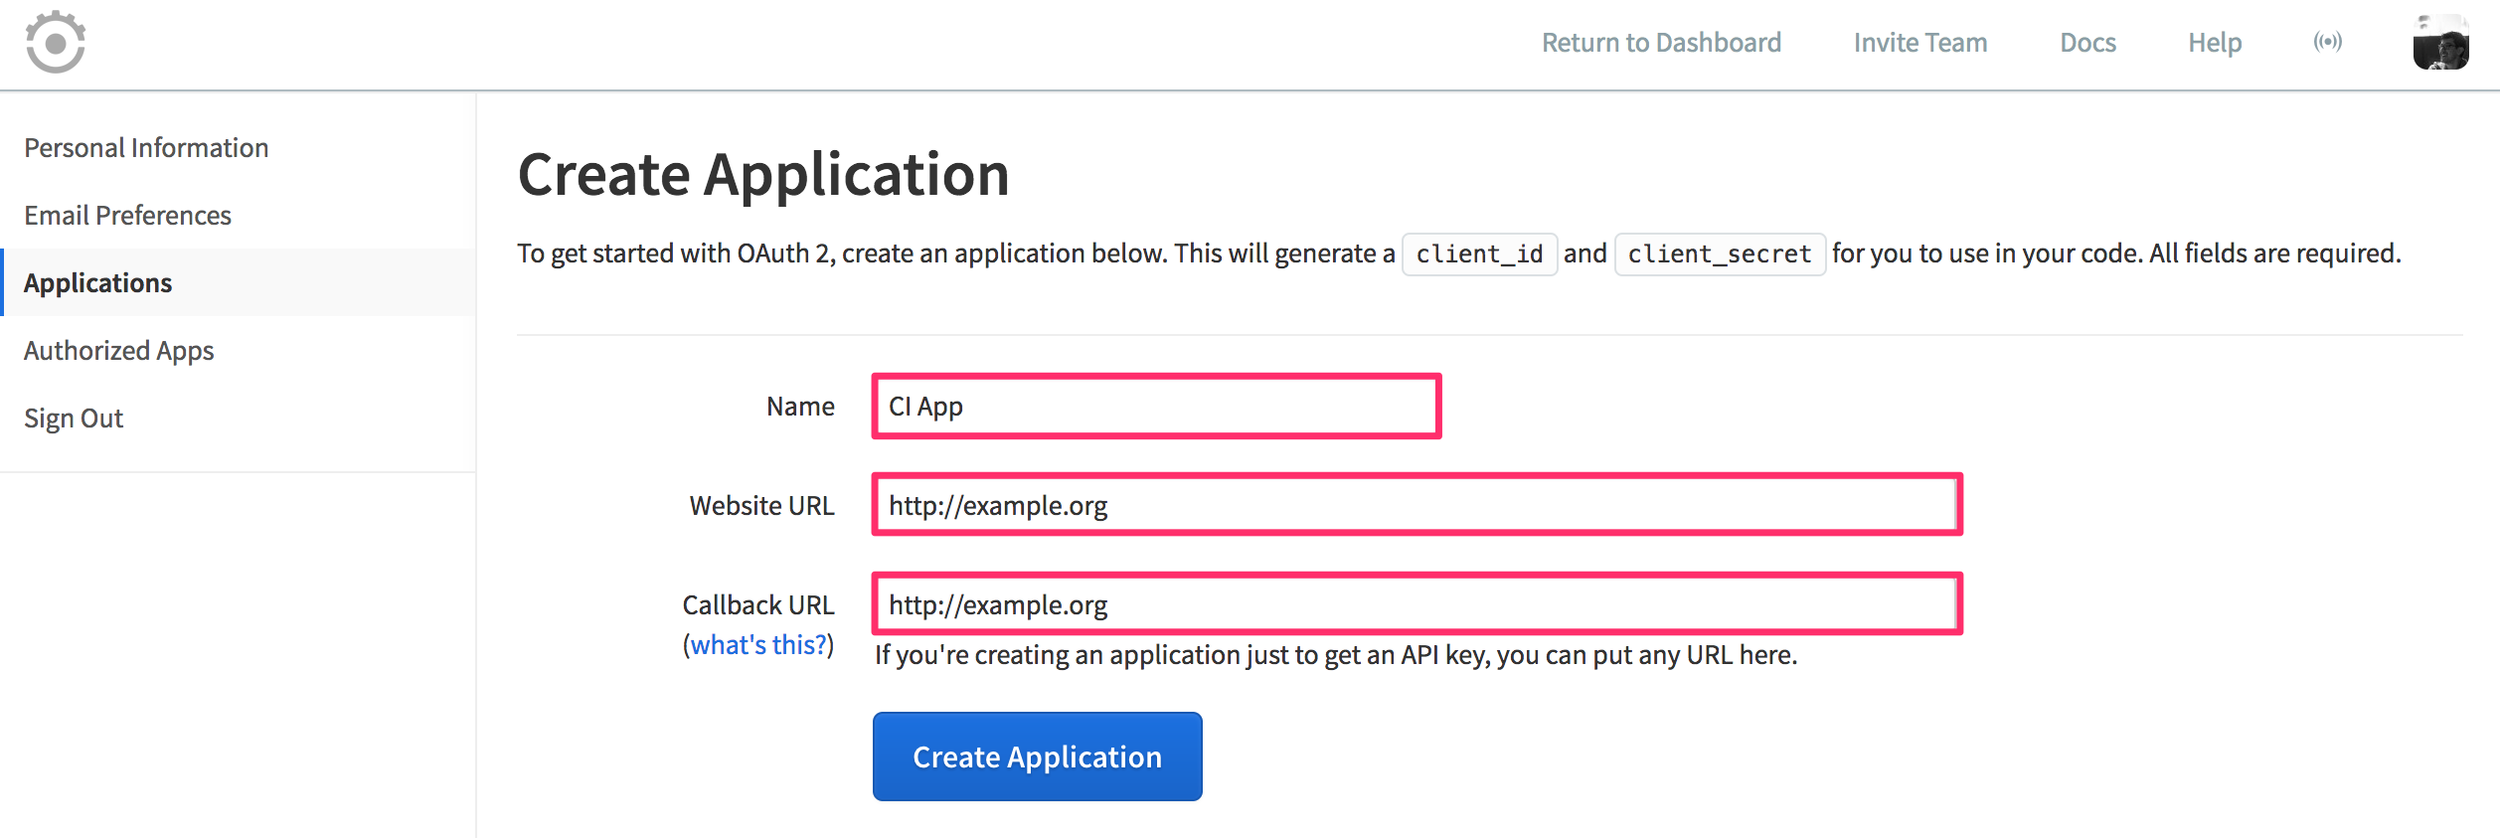 Runscope applications page displaying the Create Application page with dummy values